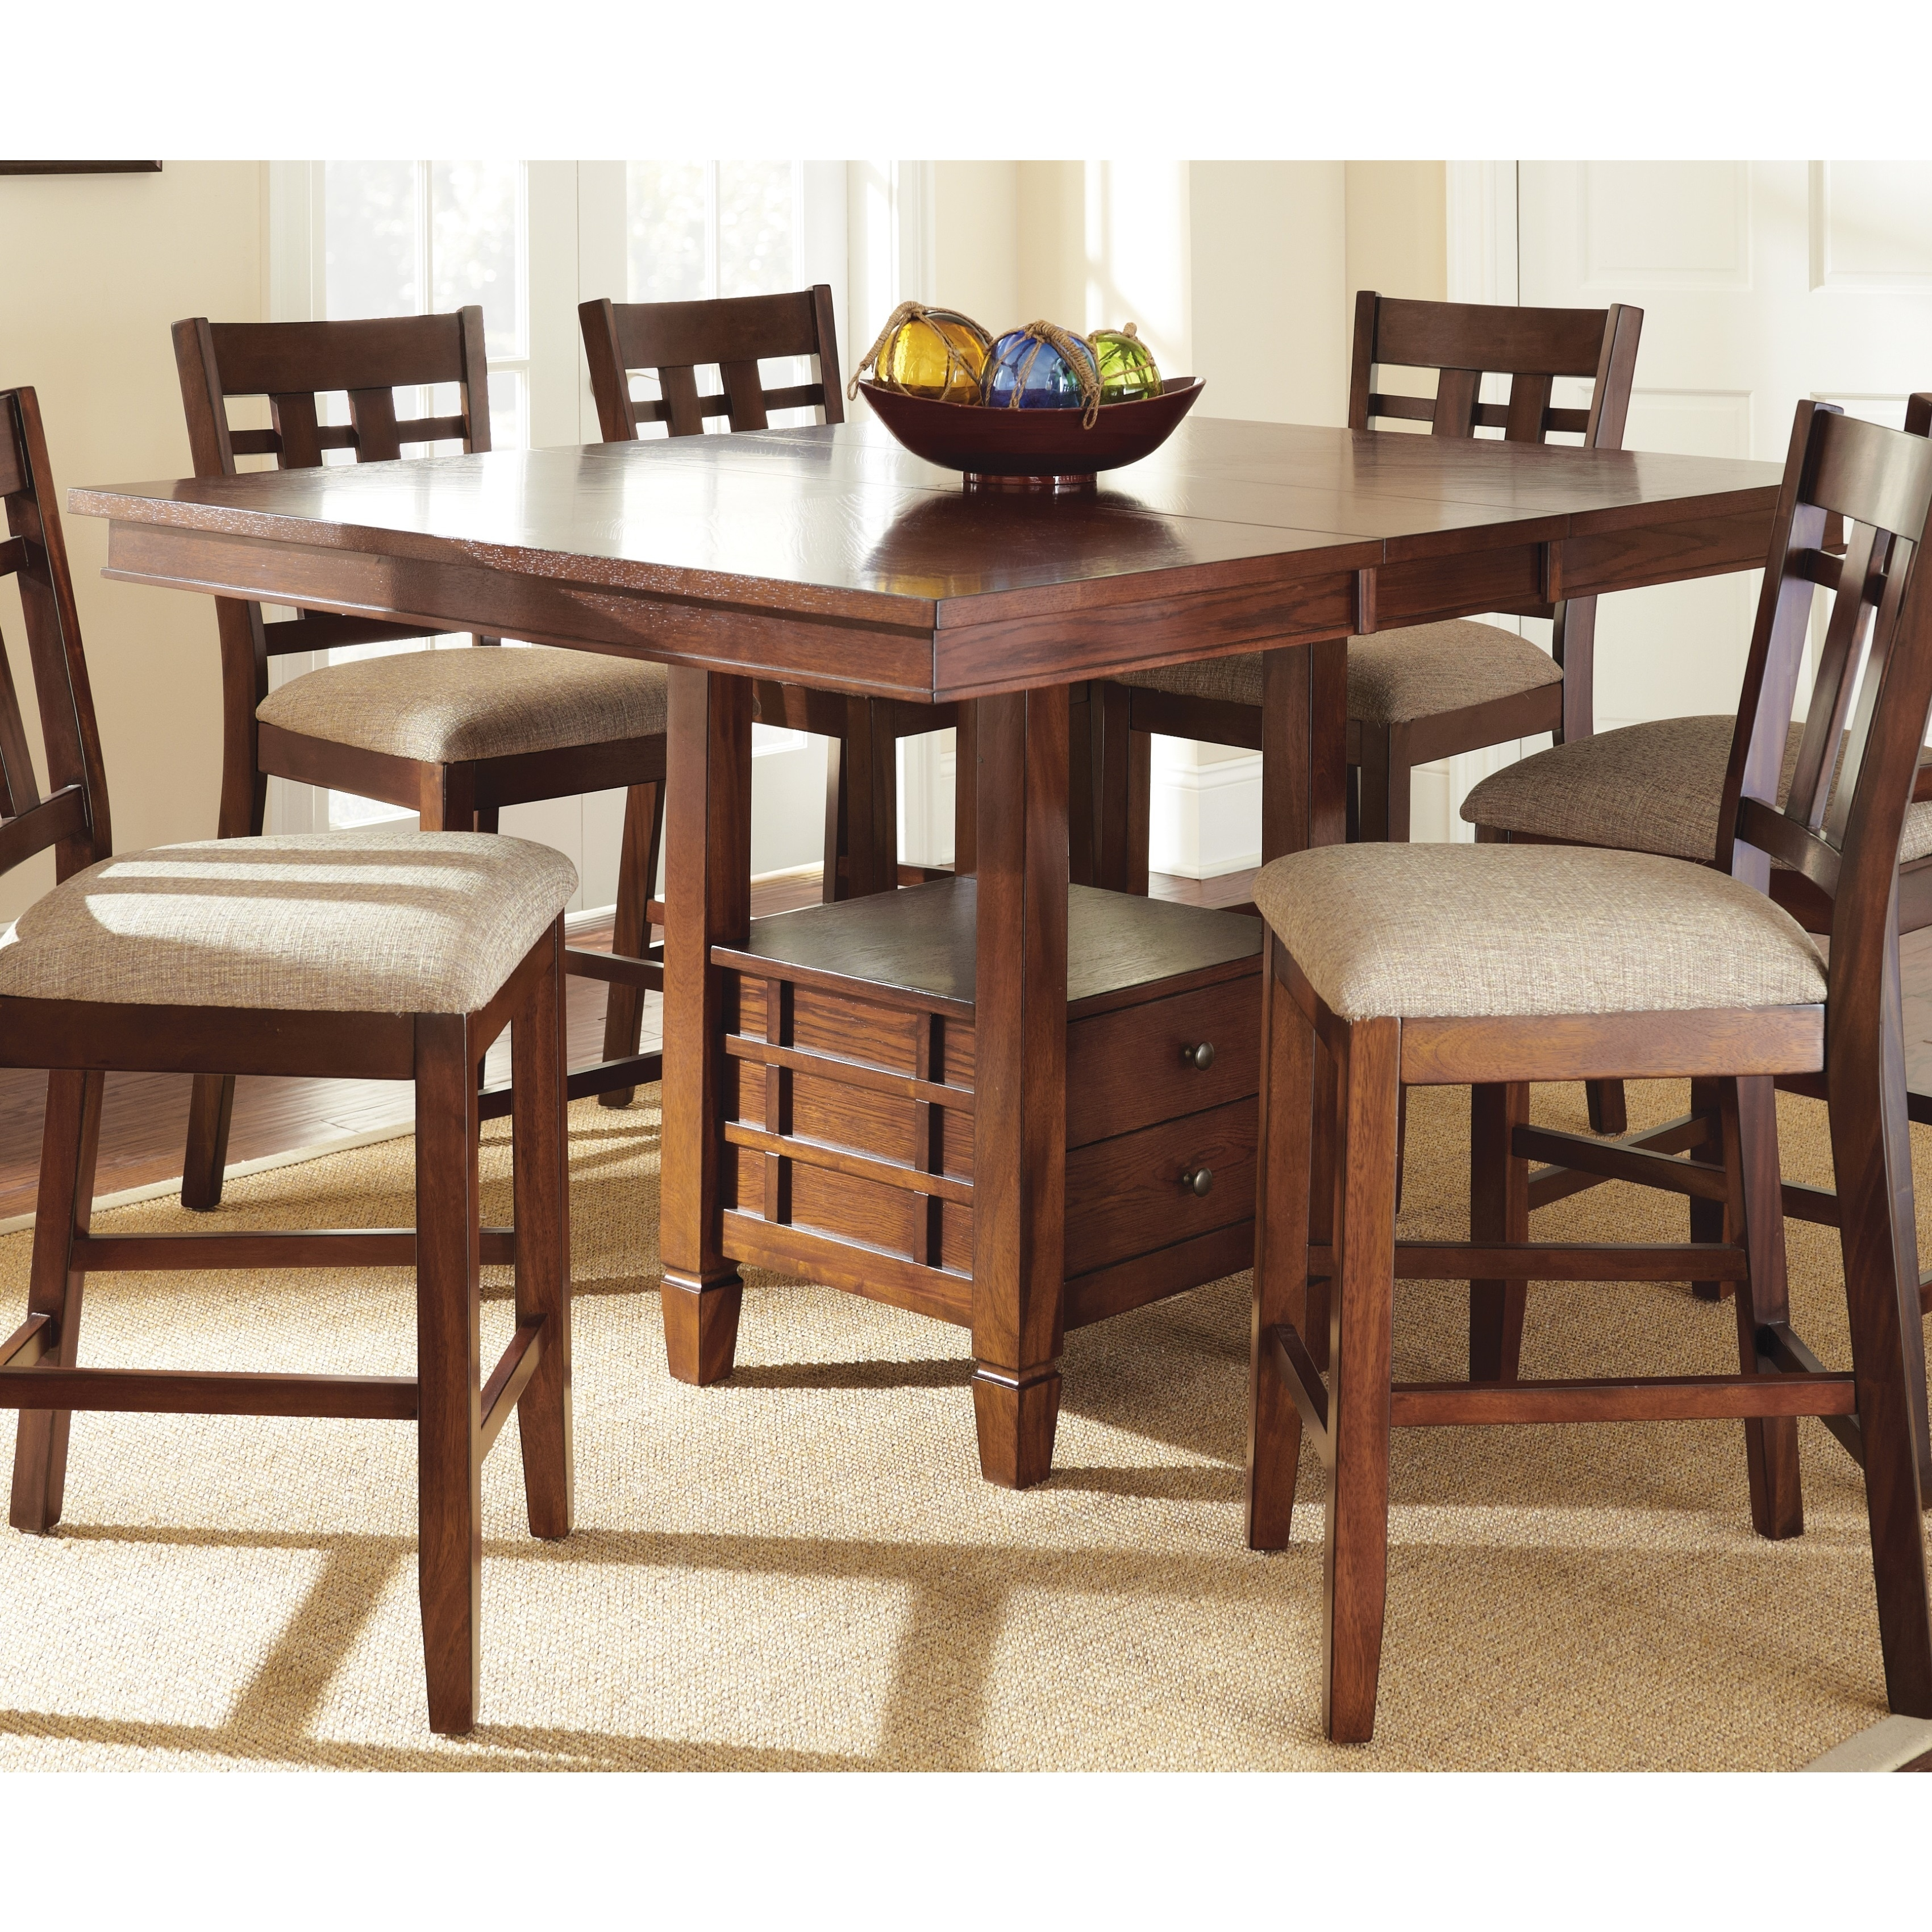 Greyson Living Blake Oak Counter Height Dining Table With Leaf